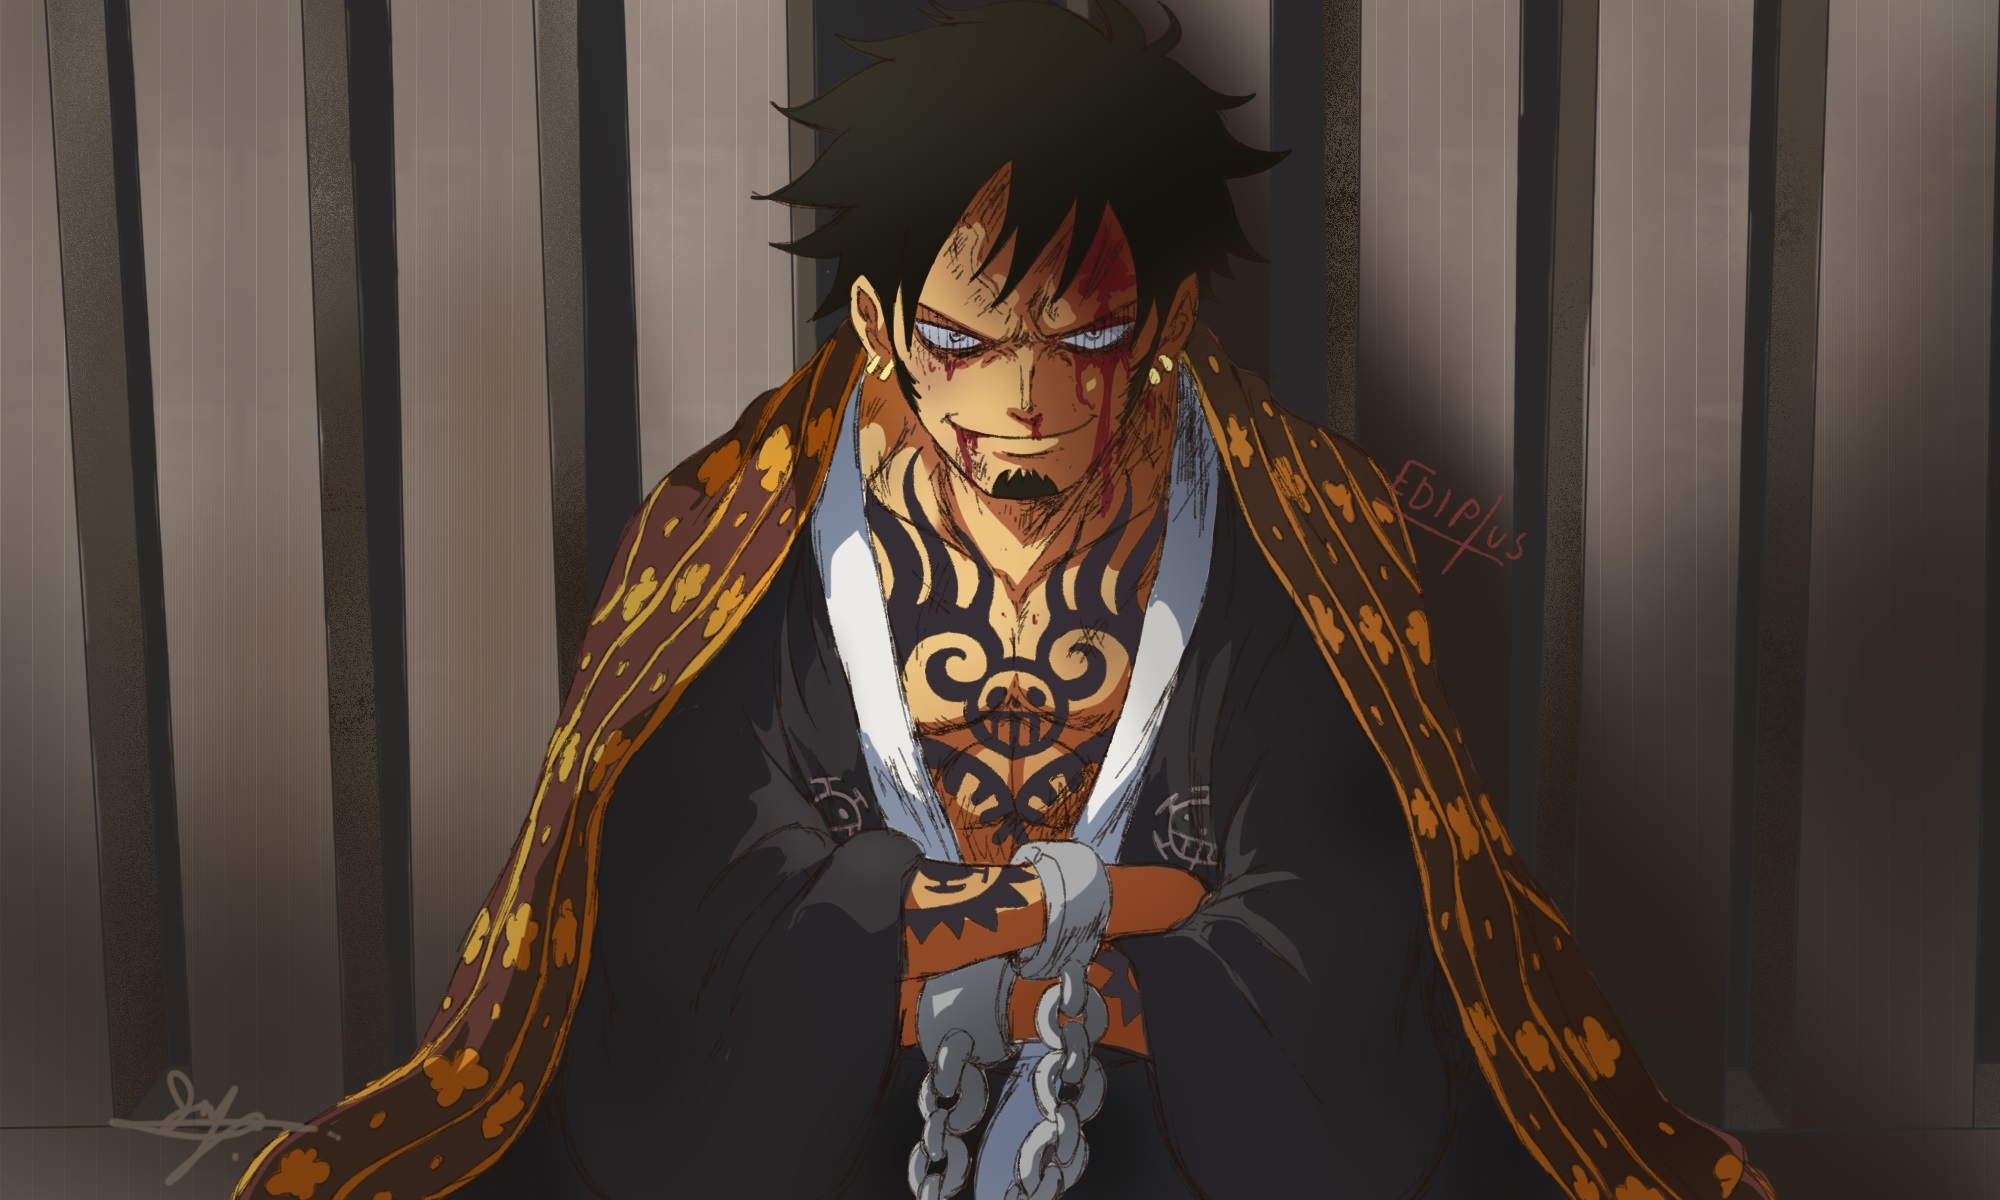 1080x2340 Trafalgar Law In One Piece 1080x2340 Resolution Wallpaper Hd Anime 4k Wallpapers Images Photos And Background